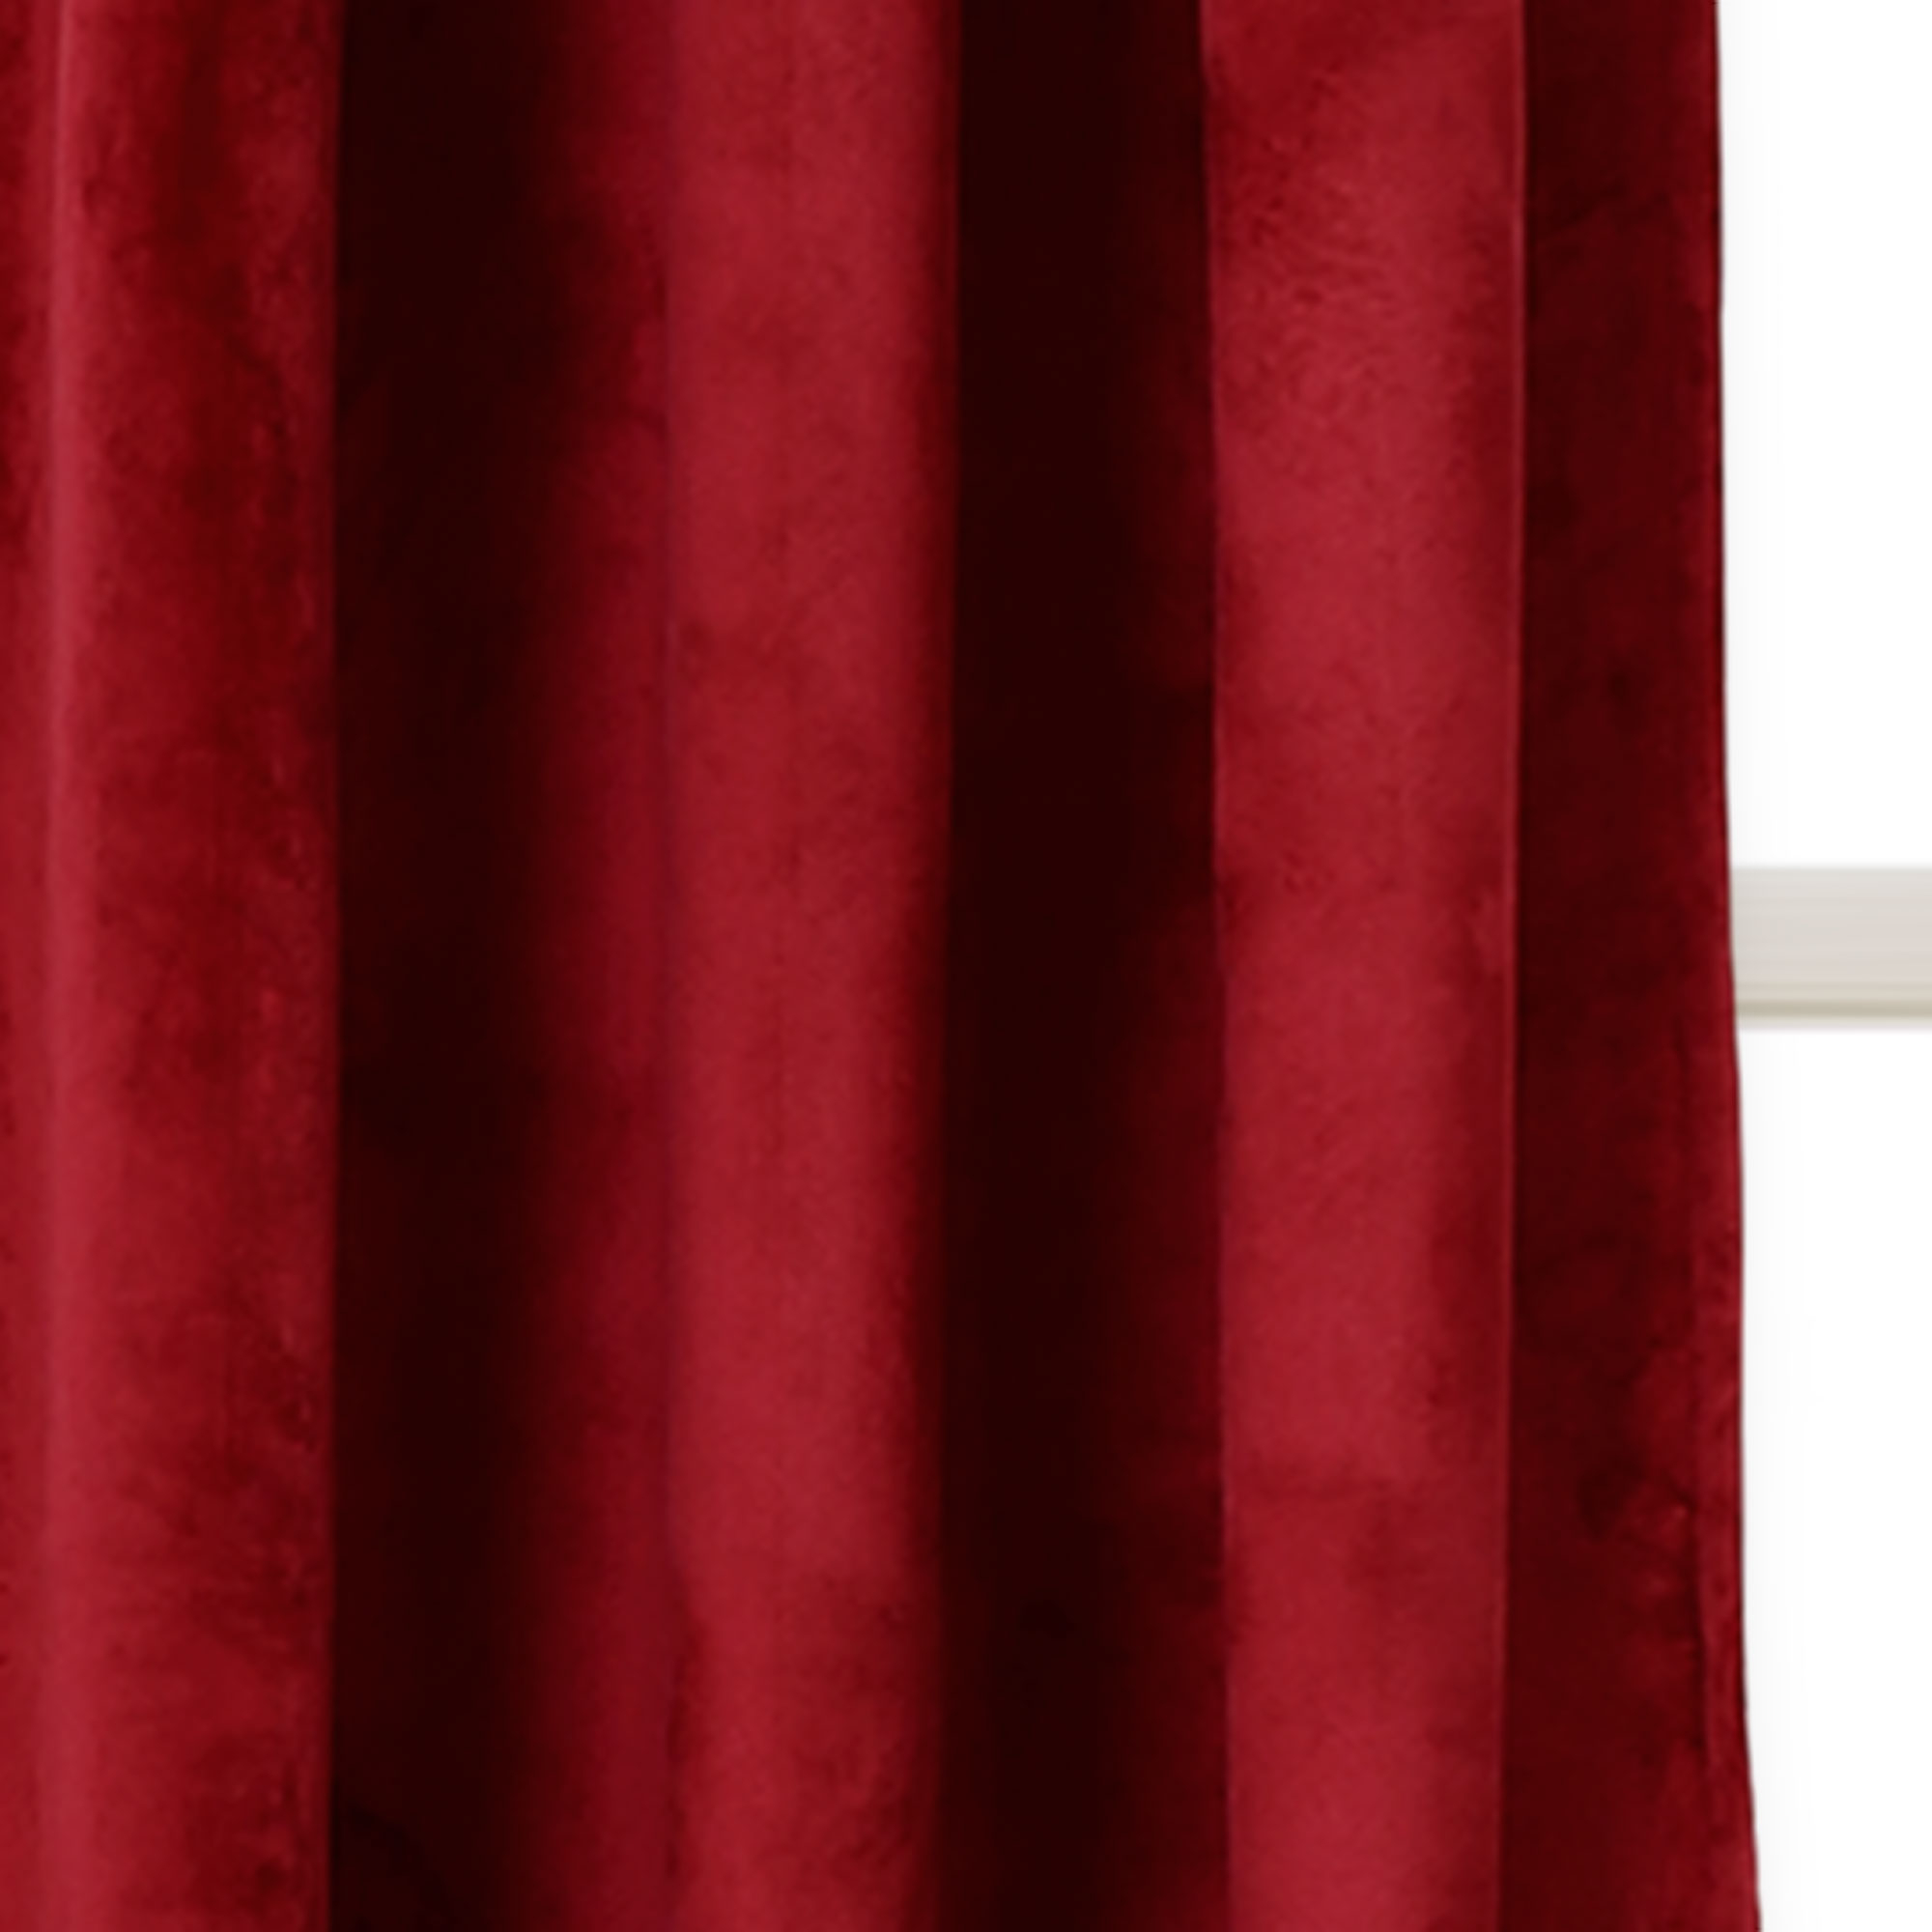 Trendy Velvet Solid Room Darkening Window Curtain Panel Sets With Regard To Details About Prima Velvet Solid Room Darkening Window Curtain Plum Set 38x (View 18 of 20)